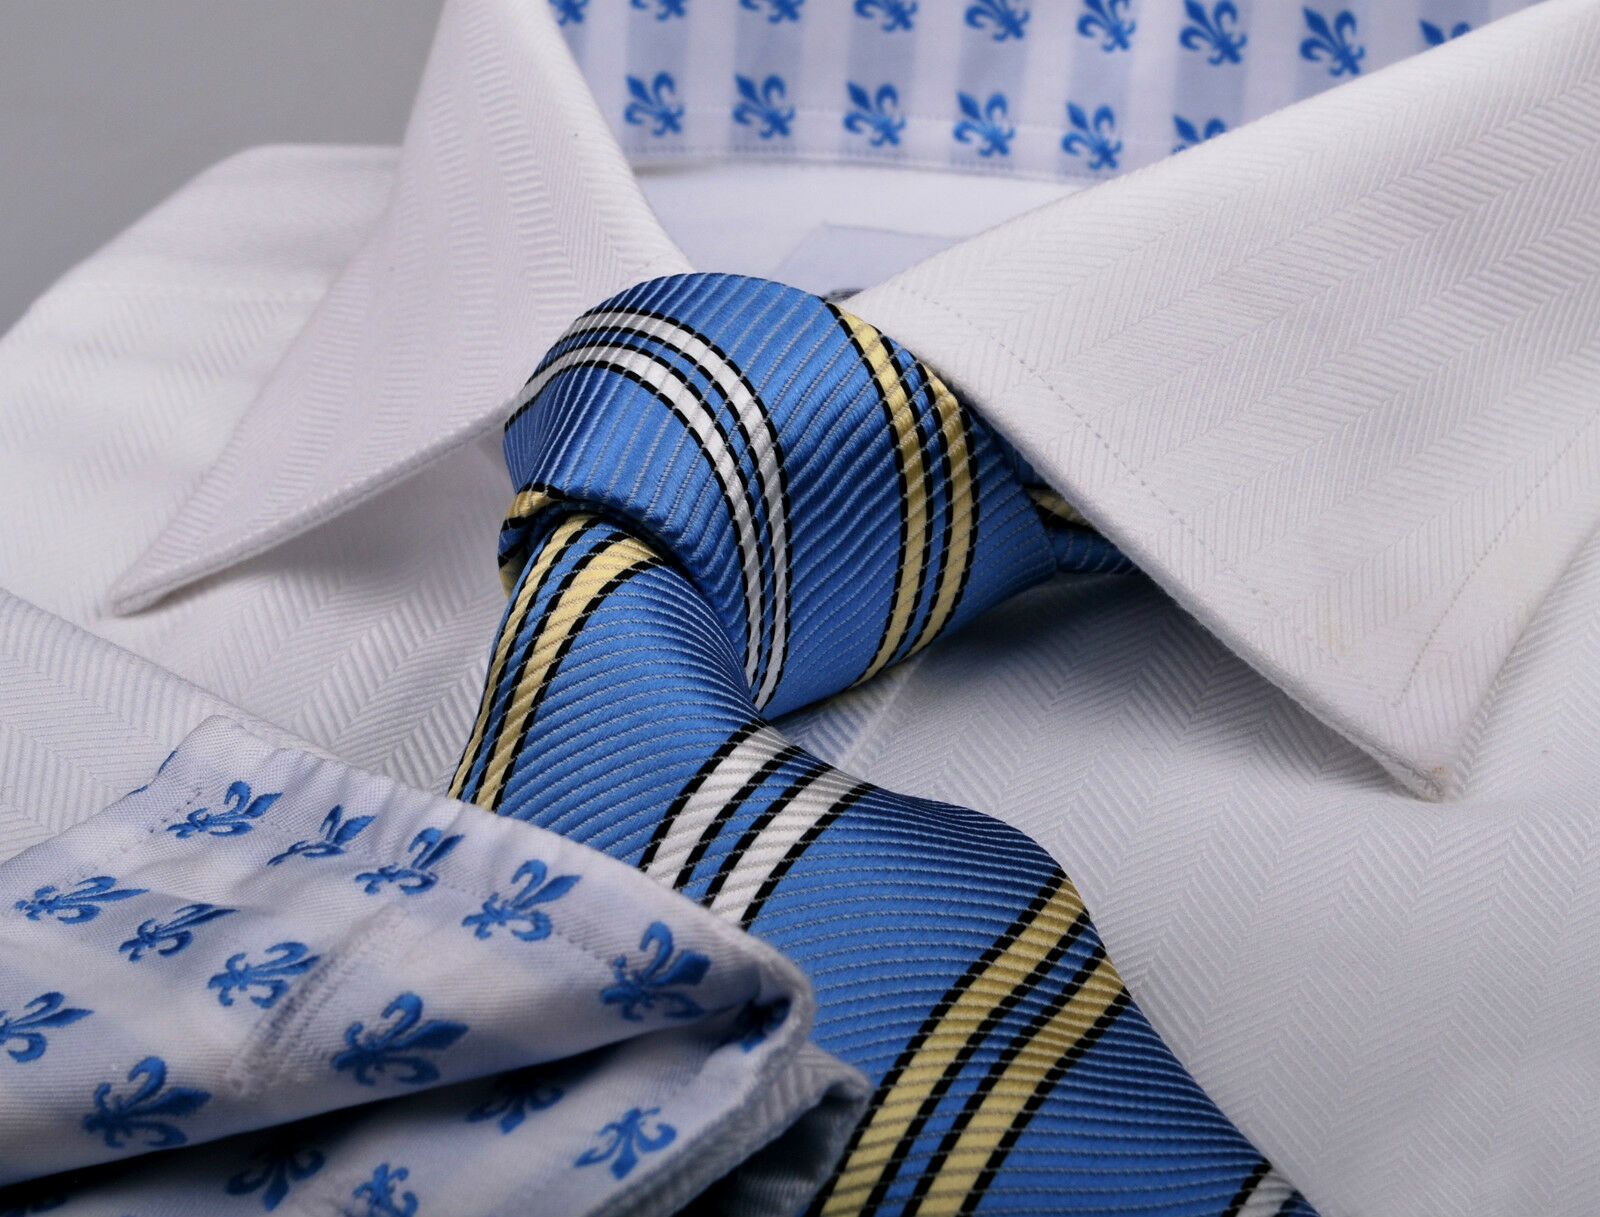 B2B White Herringbone Men's Business Formal Dress Shirt bluee Boss Fleur-De-Lis